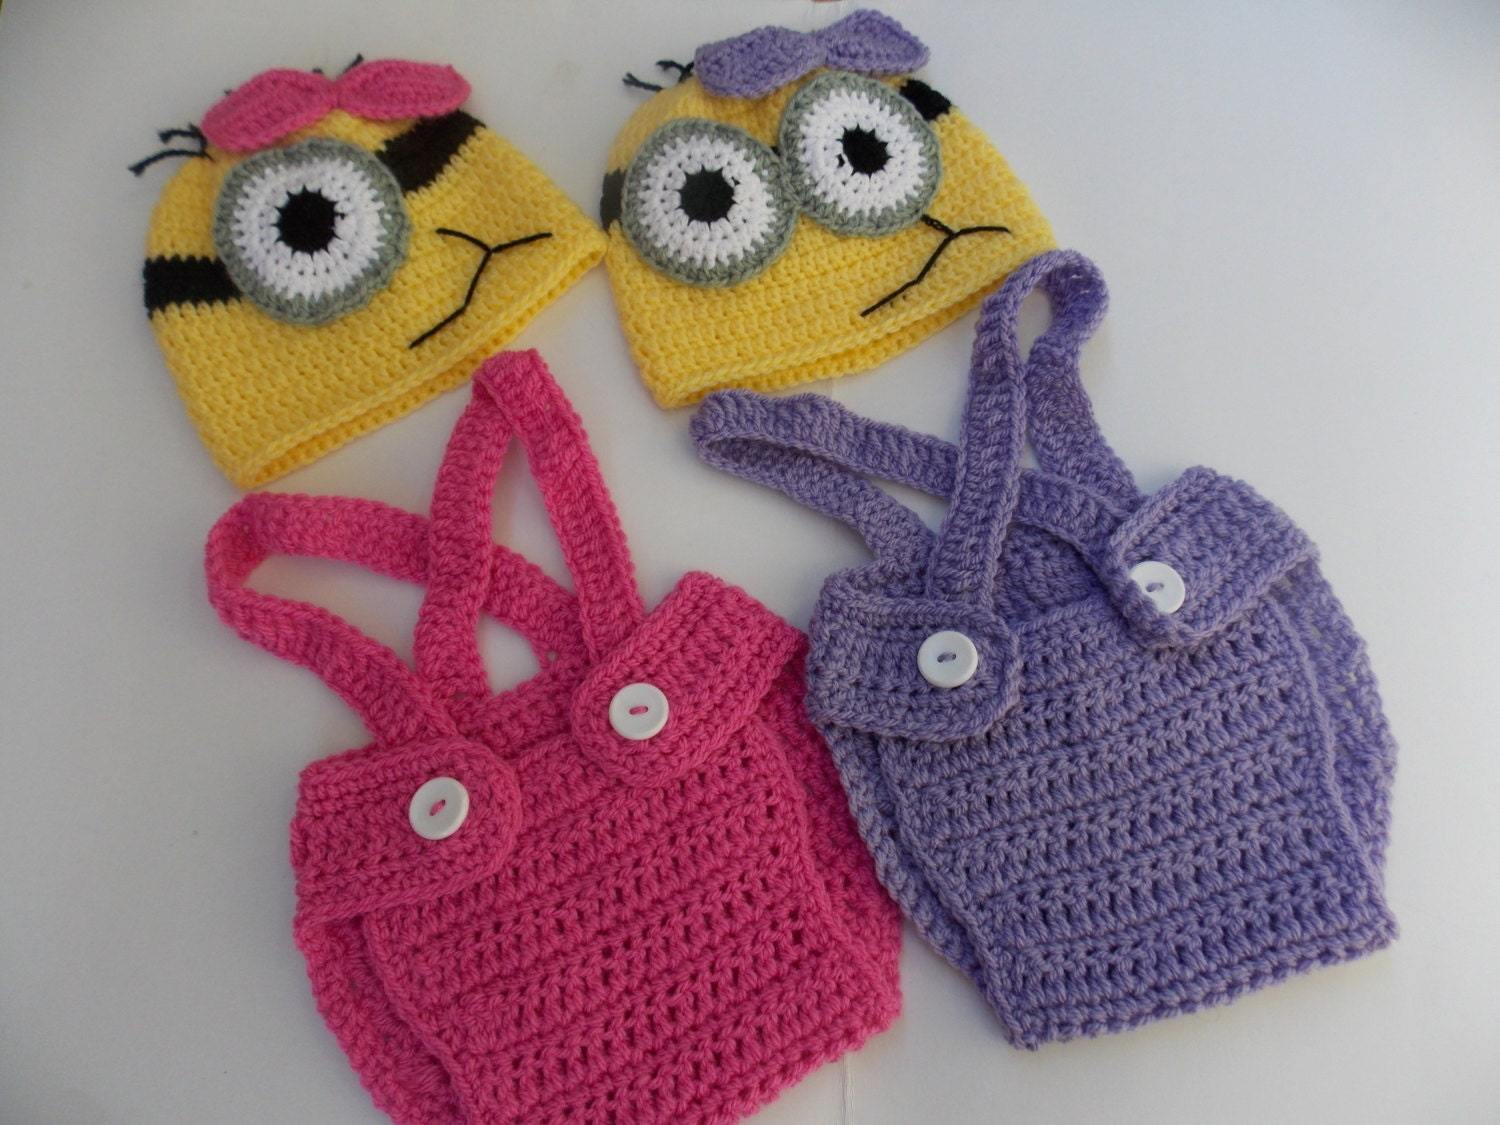 Crochet Patterns For Baby Overalls : Minion purple or pink crochet outfit-newborn by StephanDesign